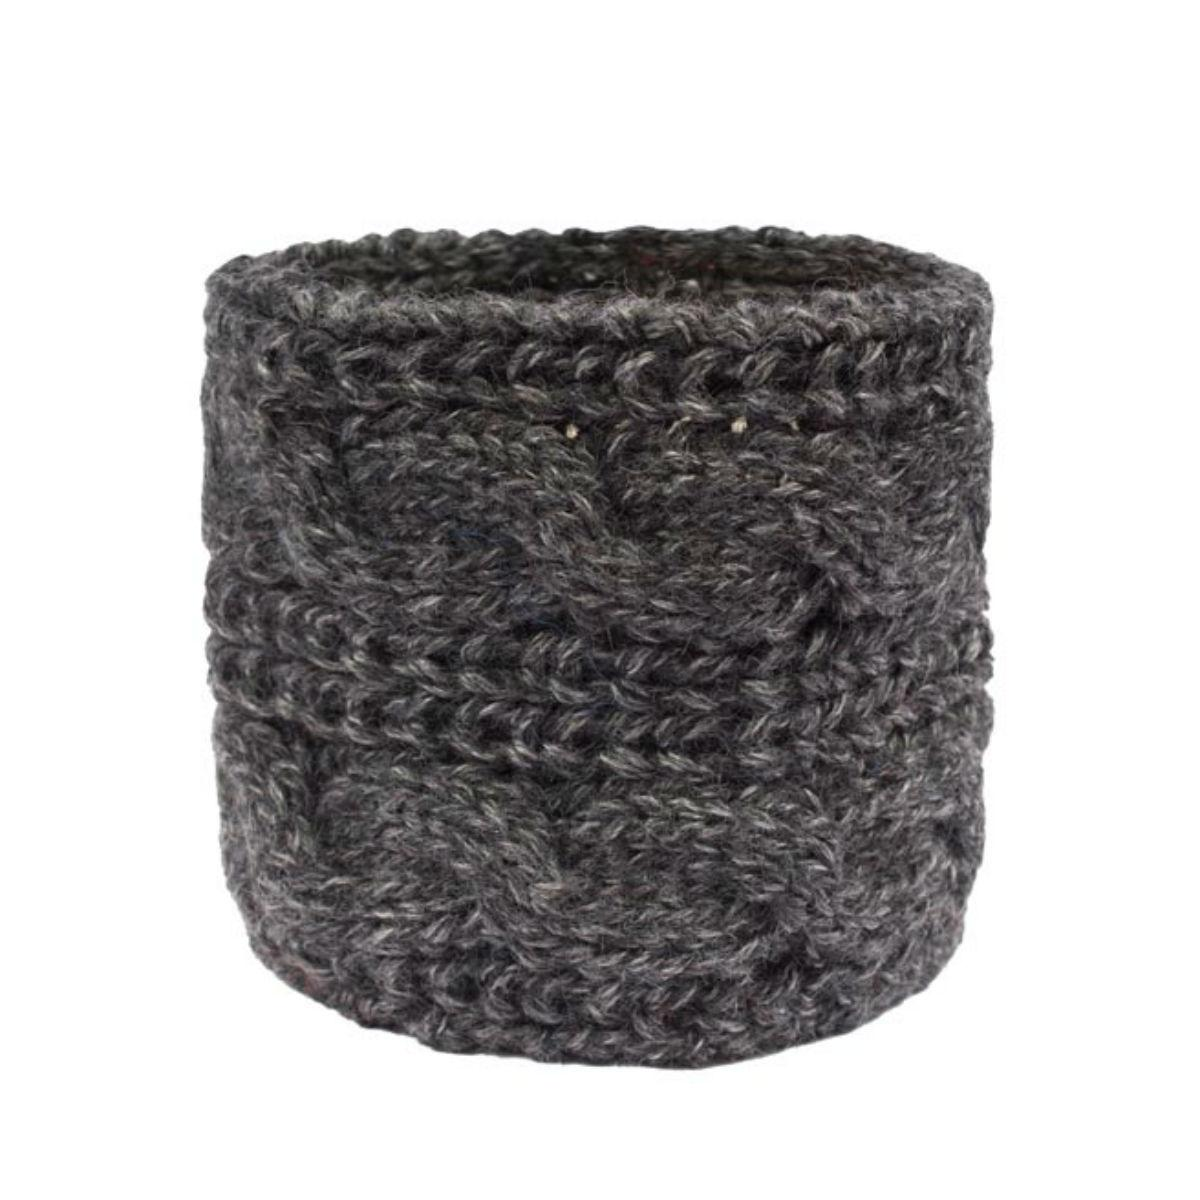 Chunky Cable Alpaca Dog Scarf by Alqo Wasi - Charcoal